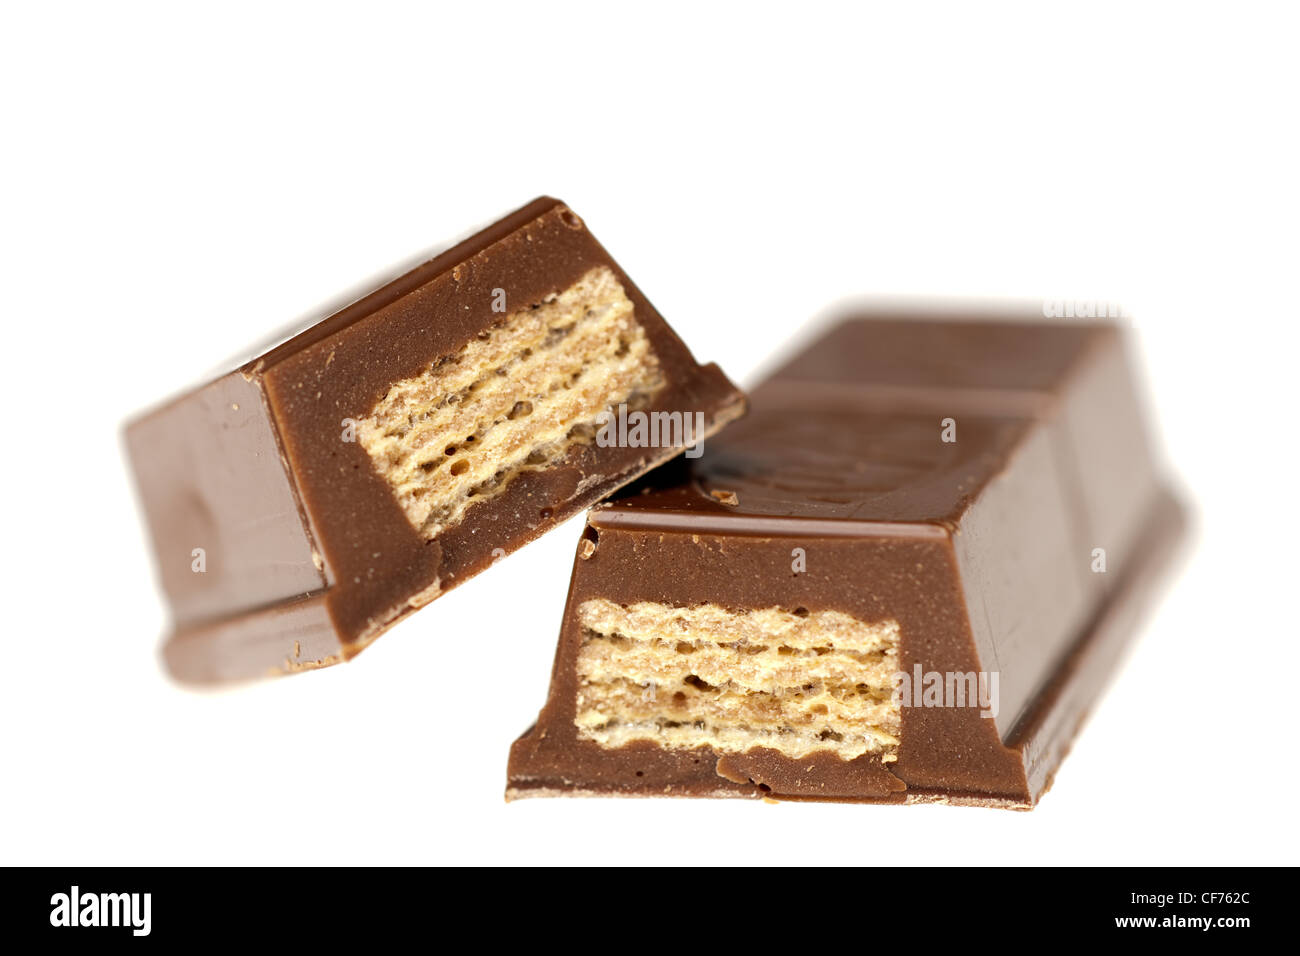 Thick chocolate wafer bar - Stock Image